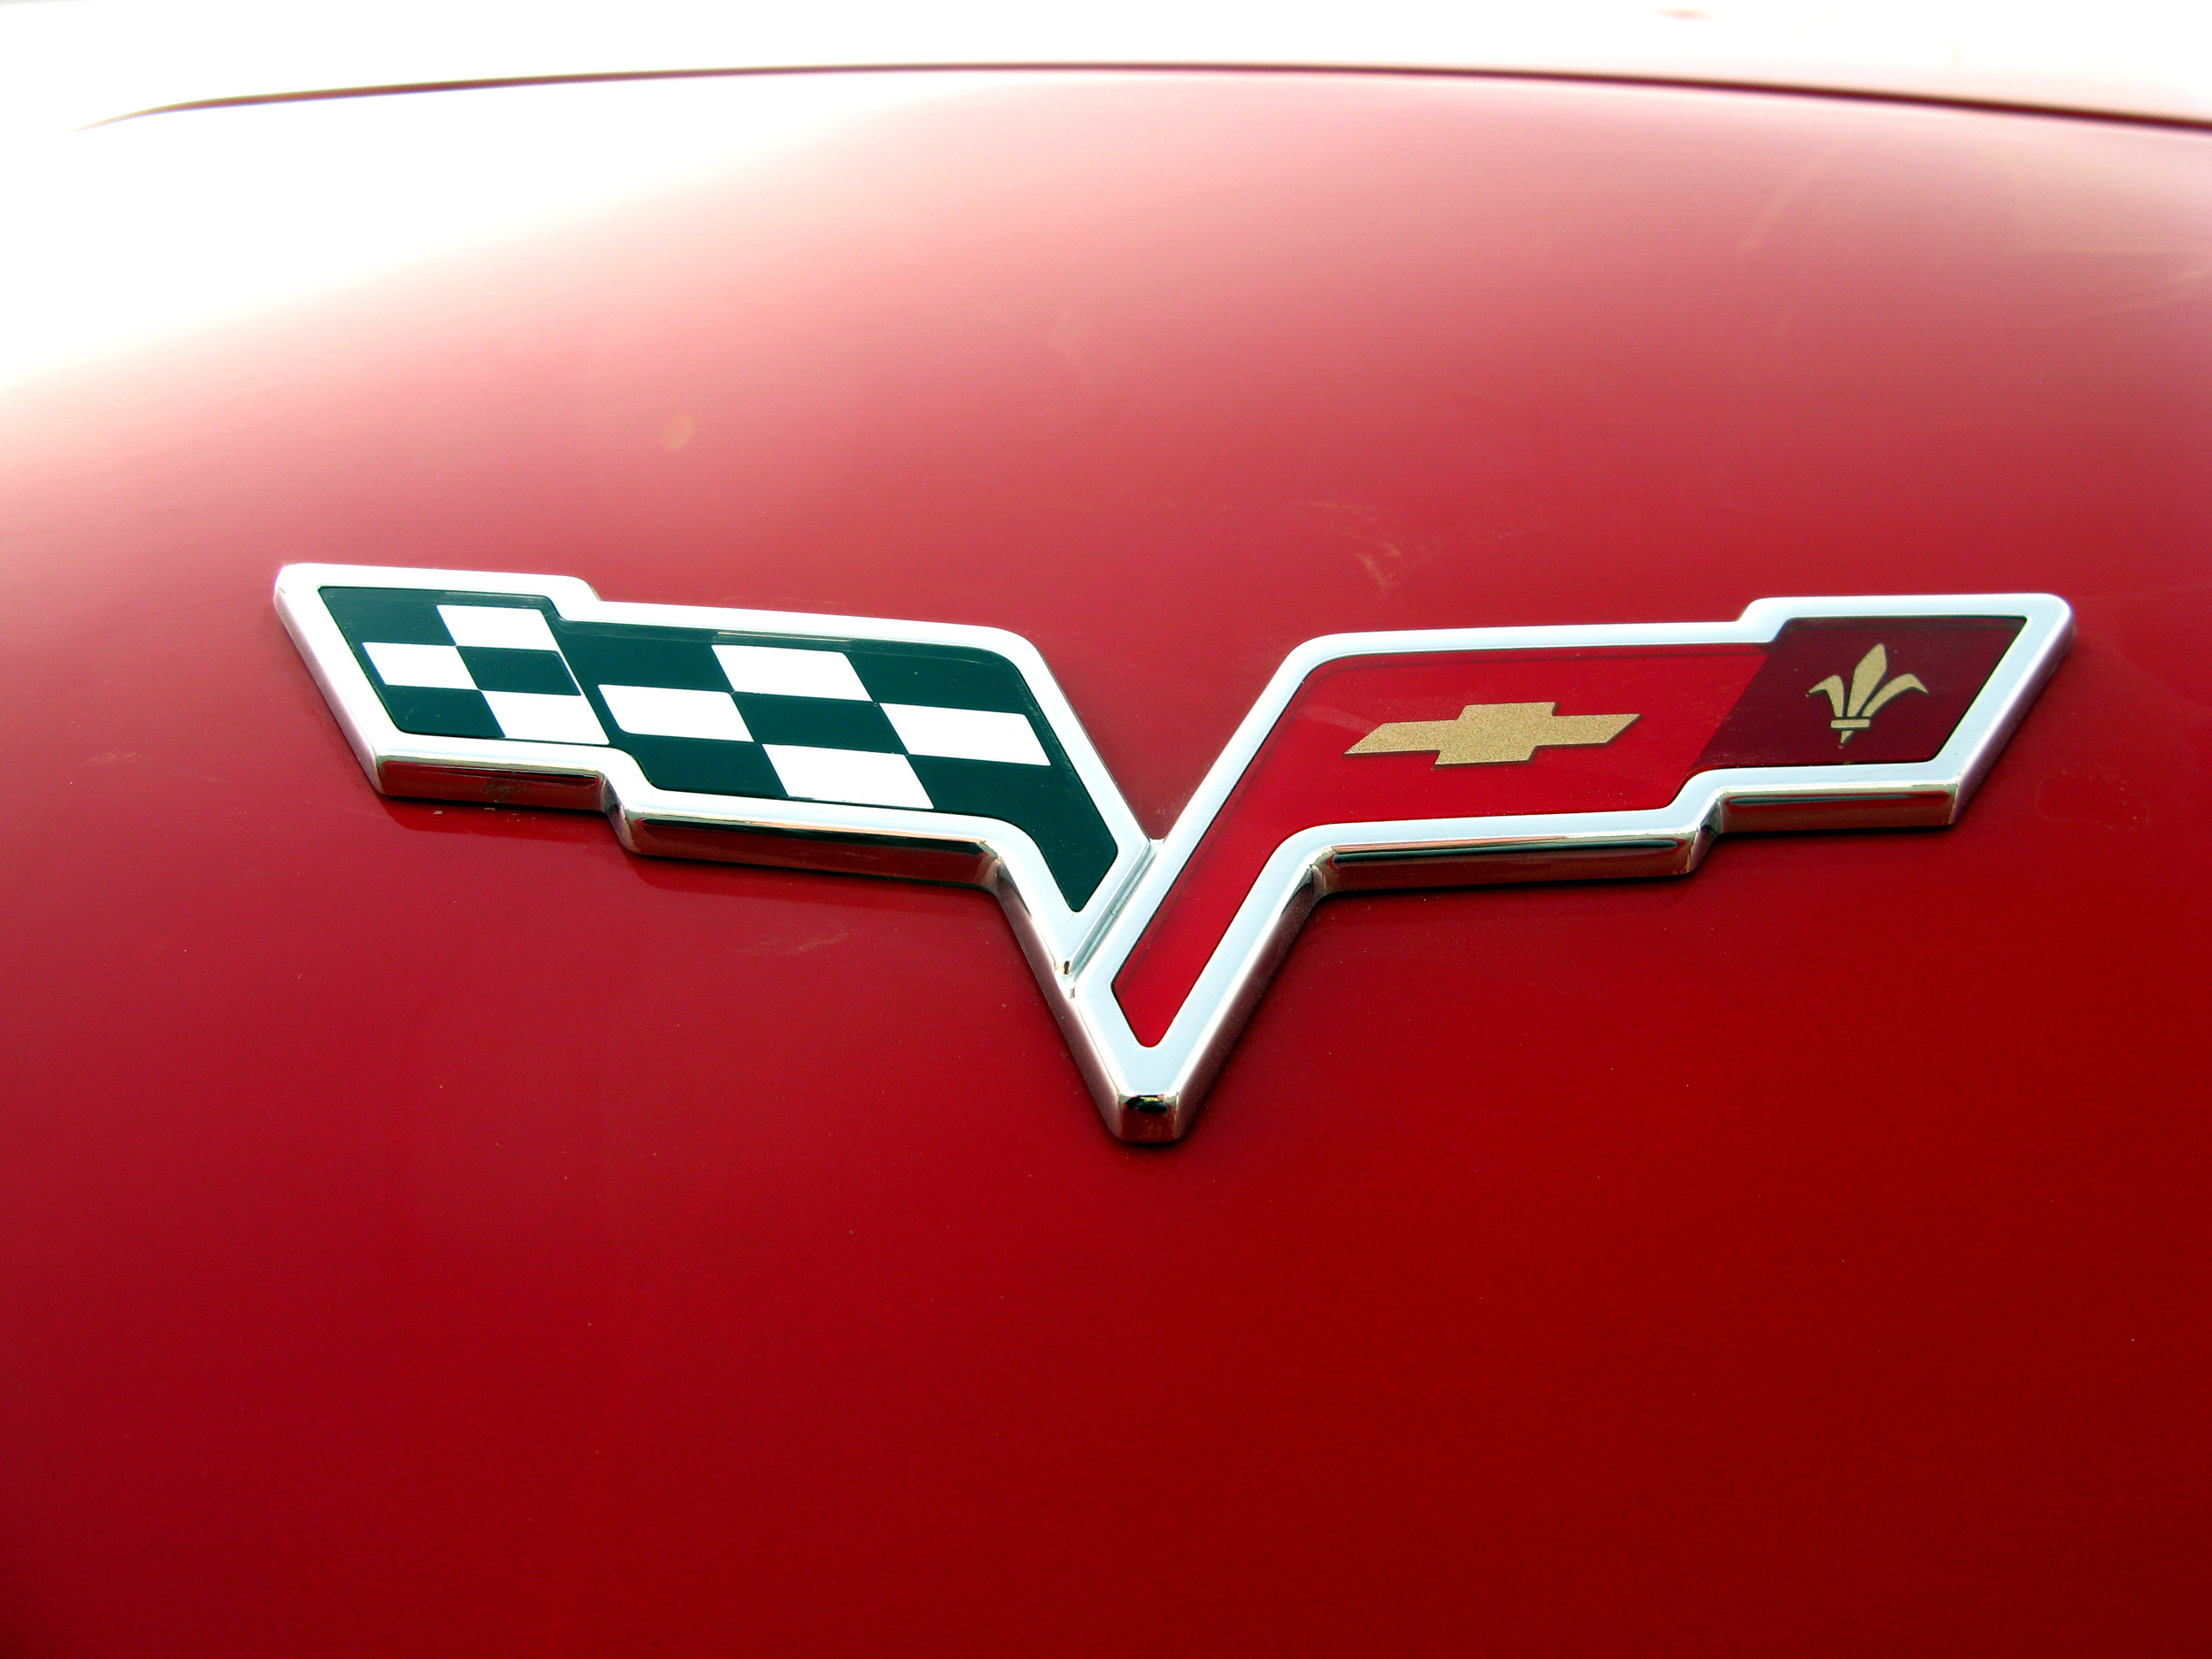 Chevrolet Stingray Logo